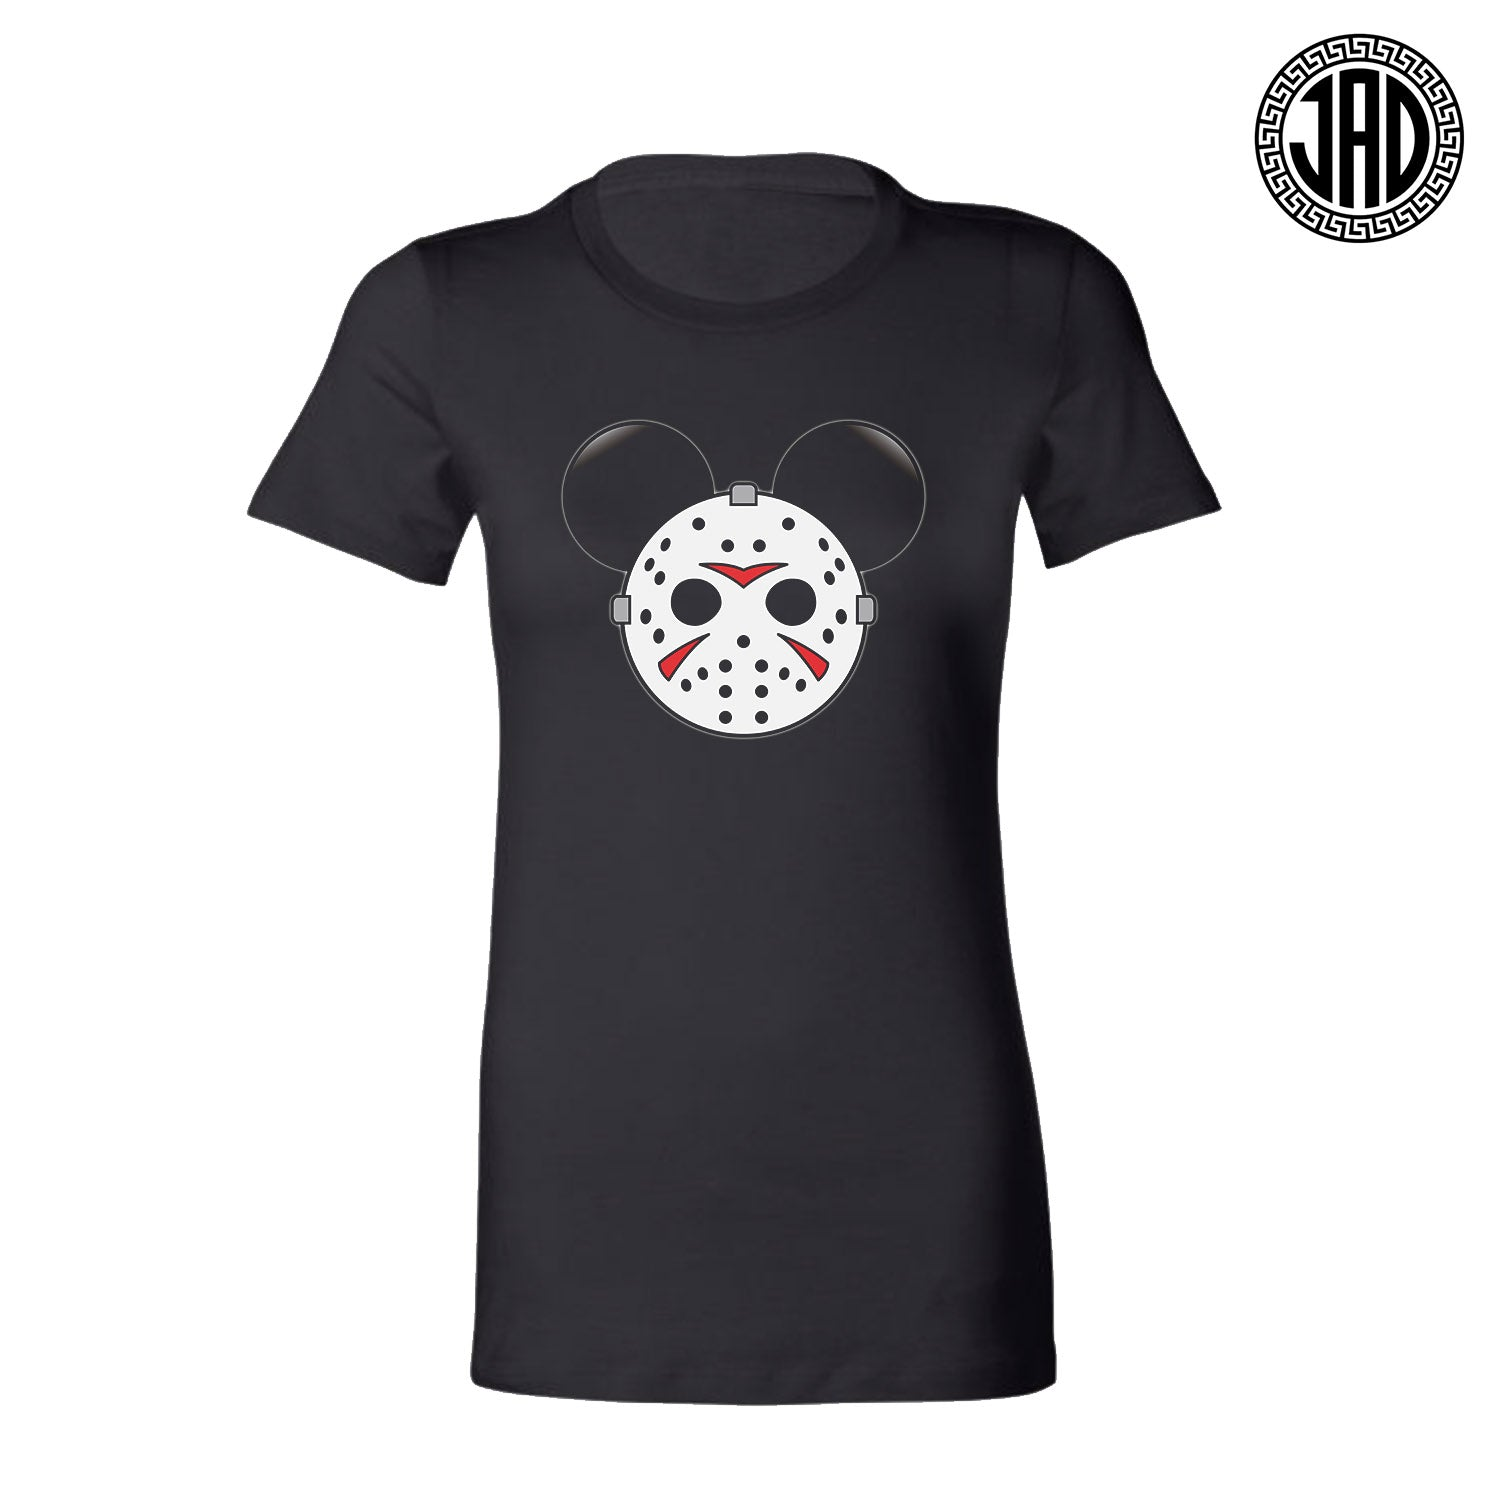 Mr. Murder Mouse - Women's Tee